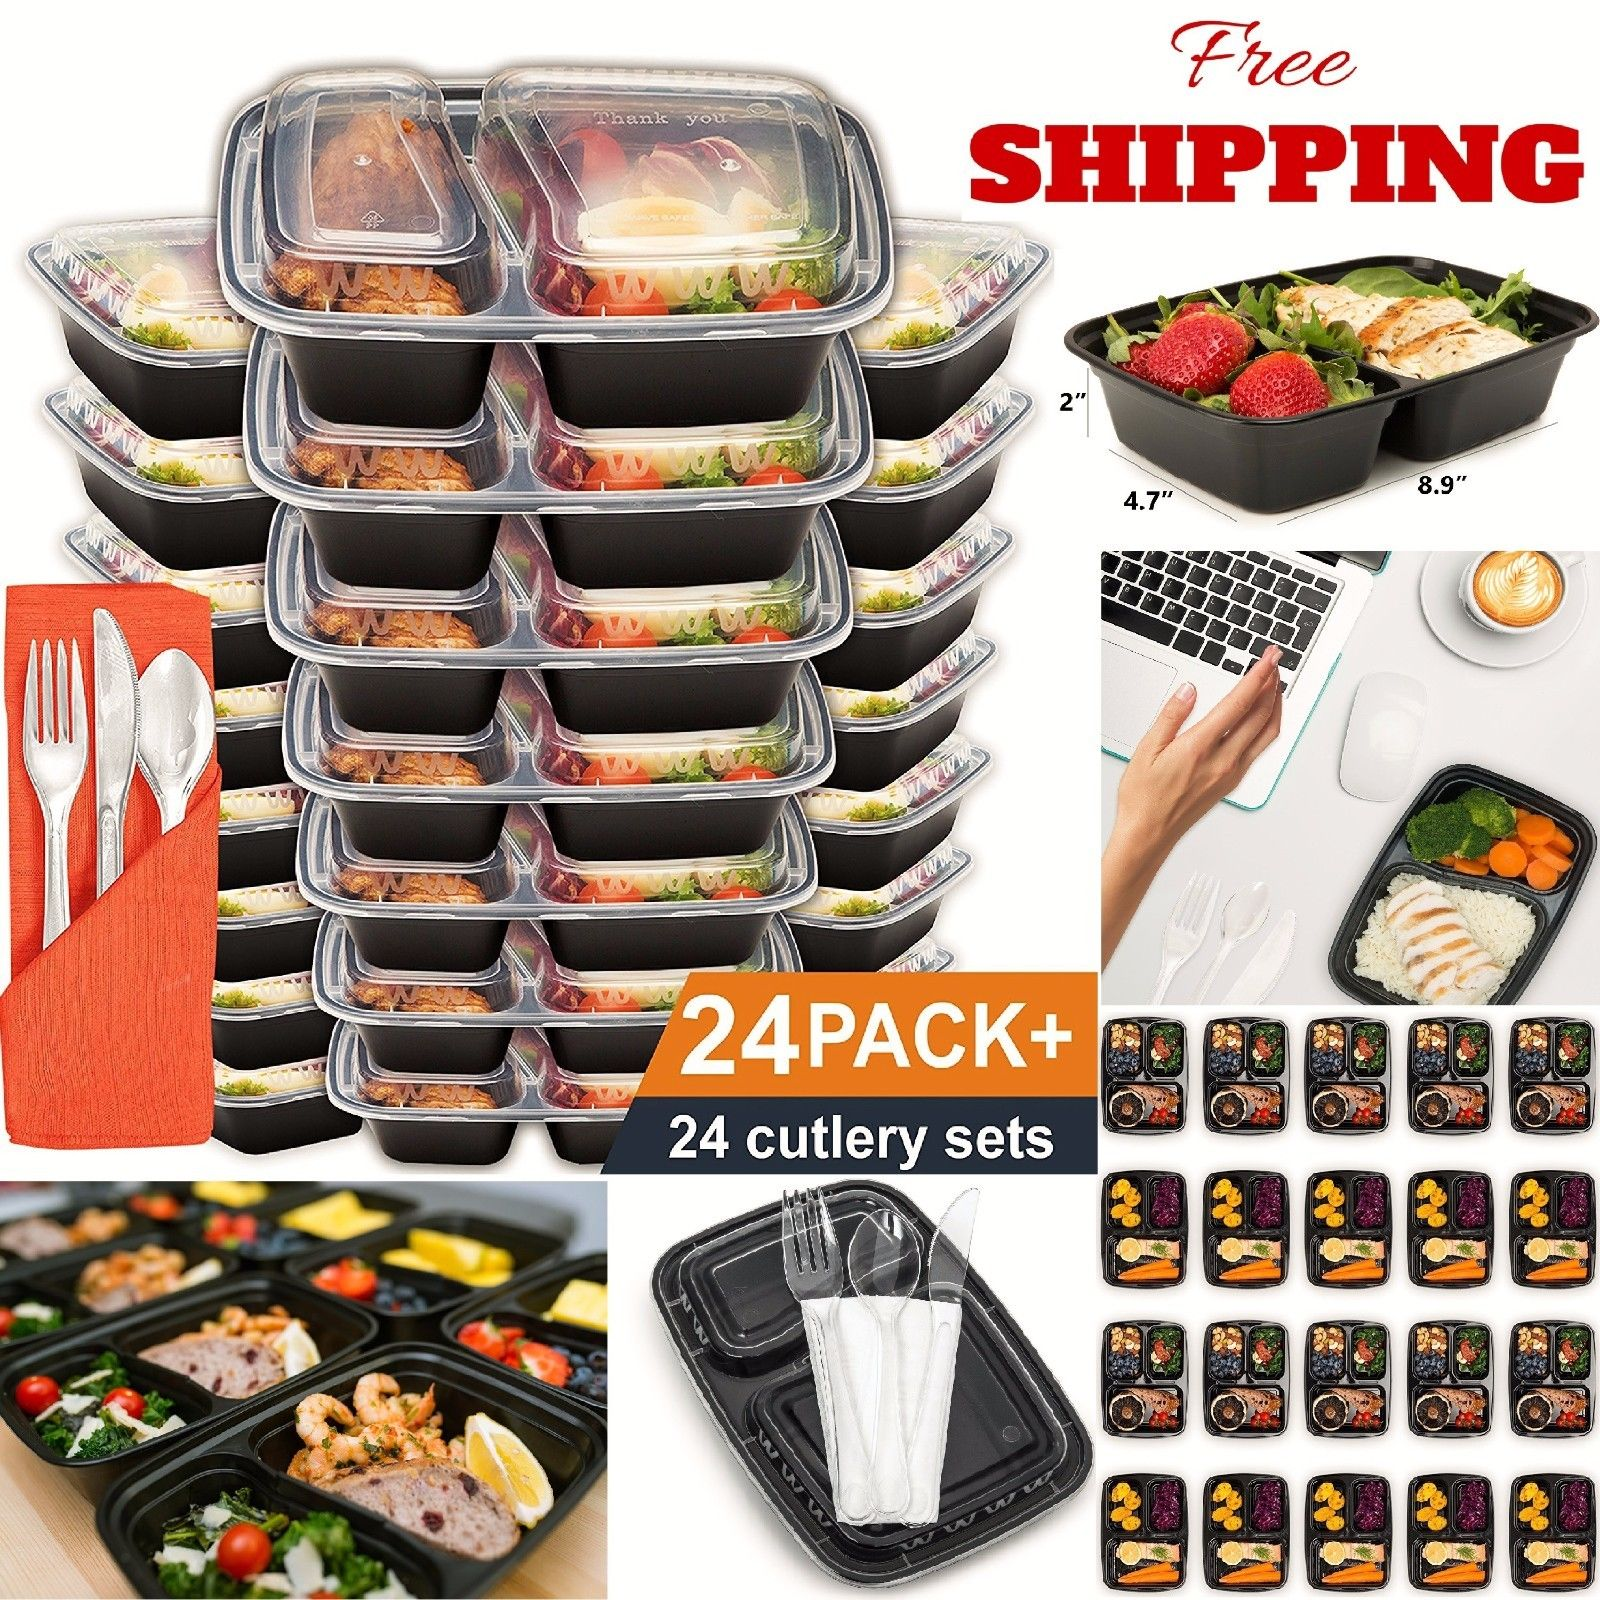 24 Meal Prep Containers Plastic Food Storage Microwavable Reusable 2 Compartment 1